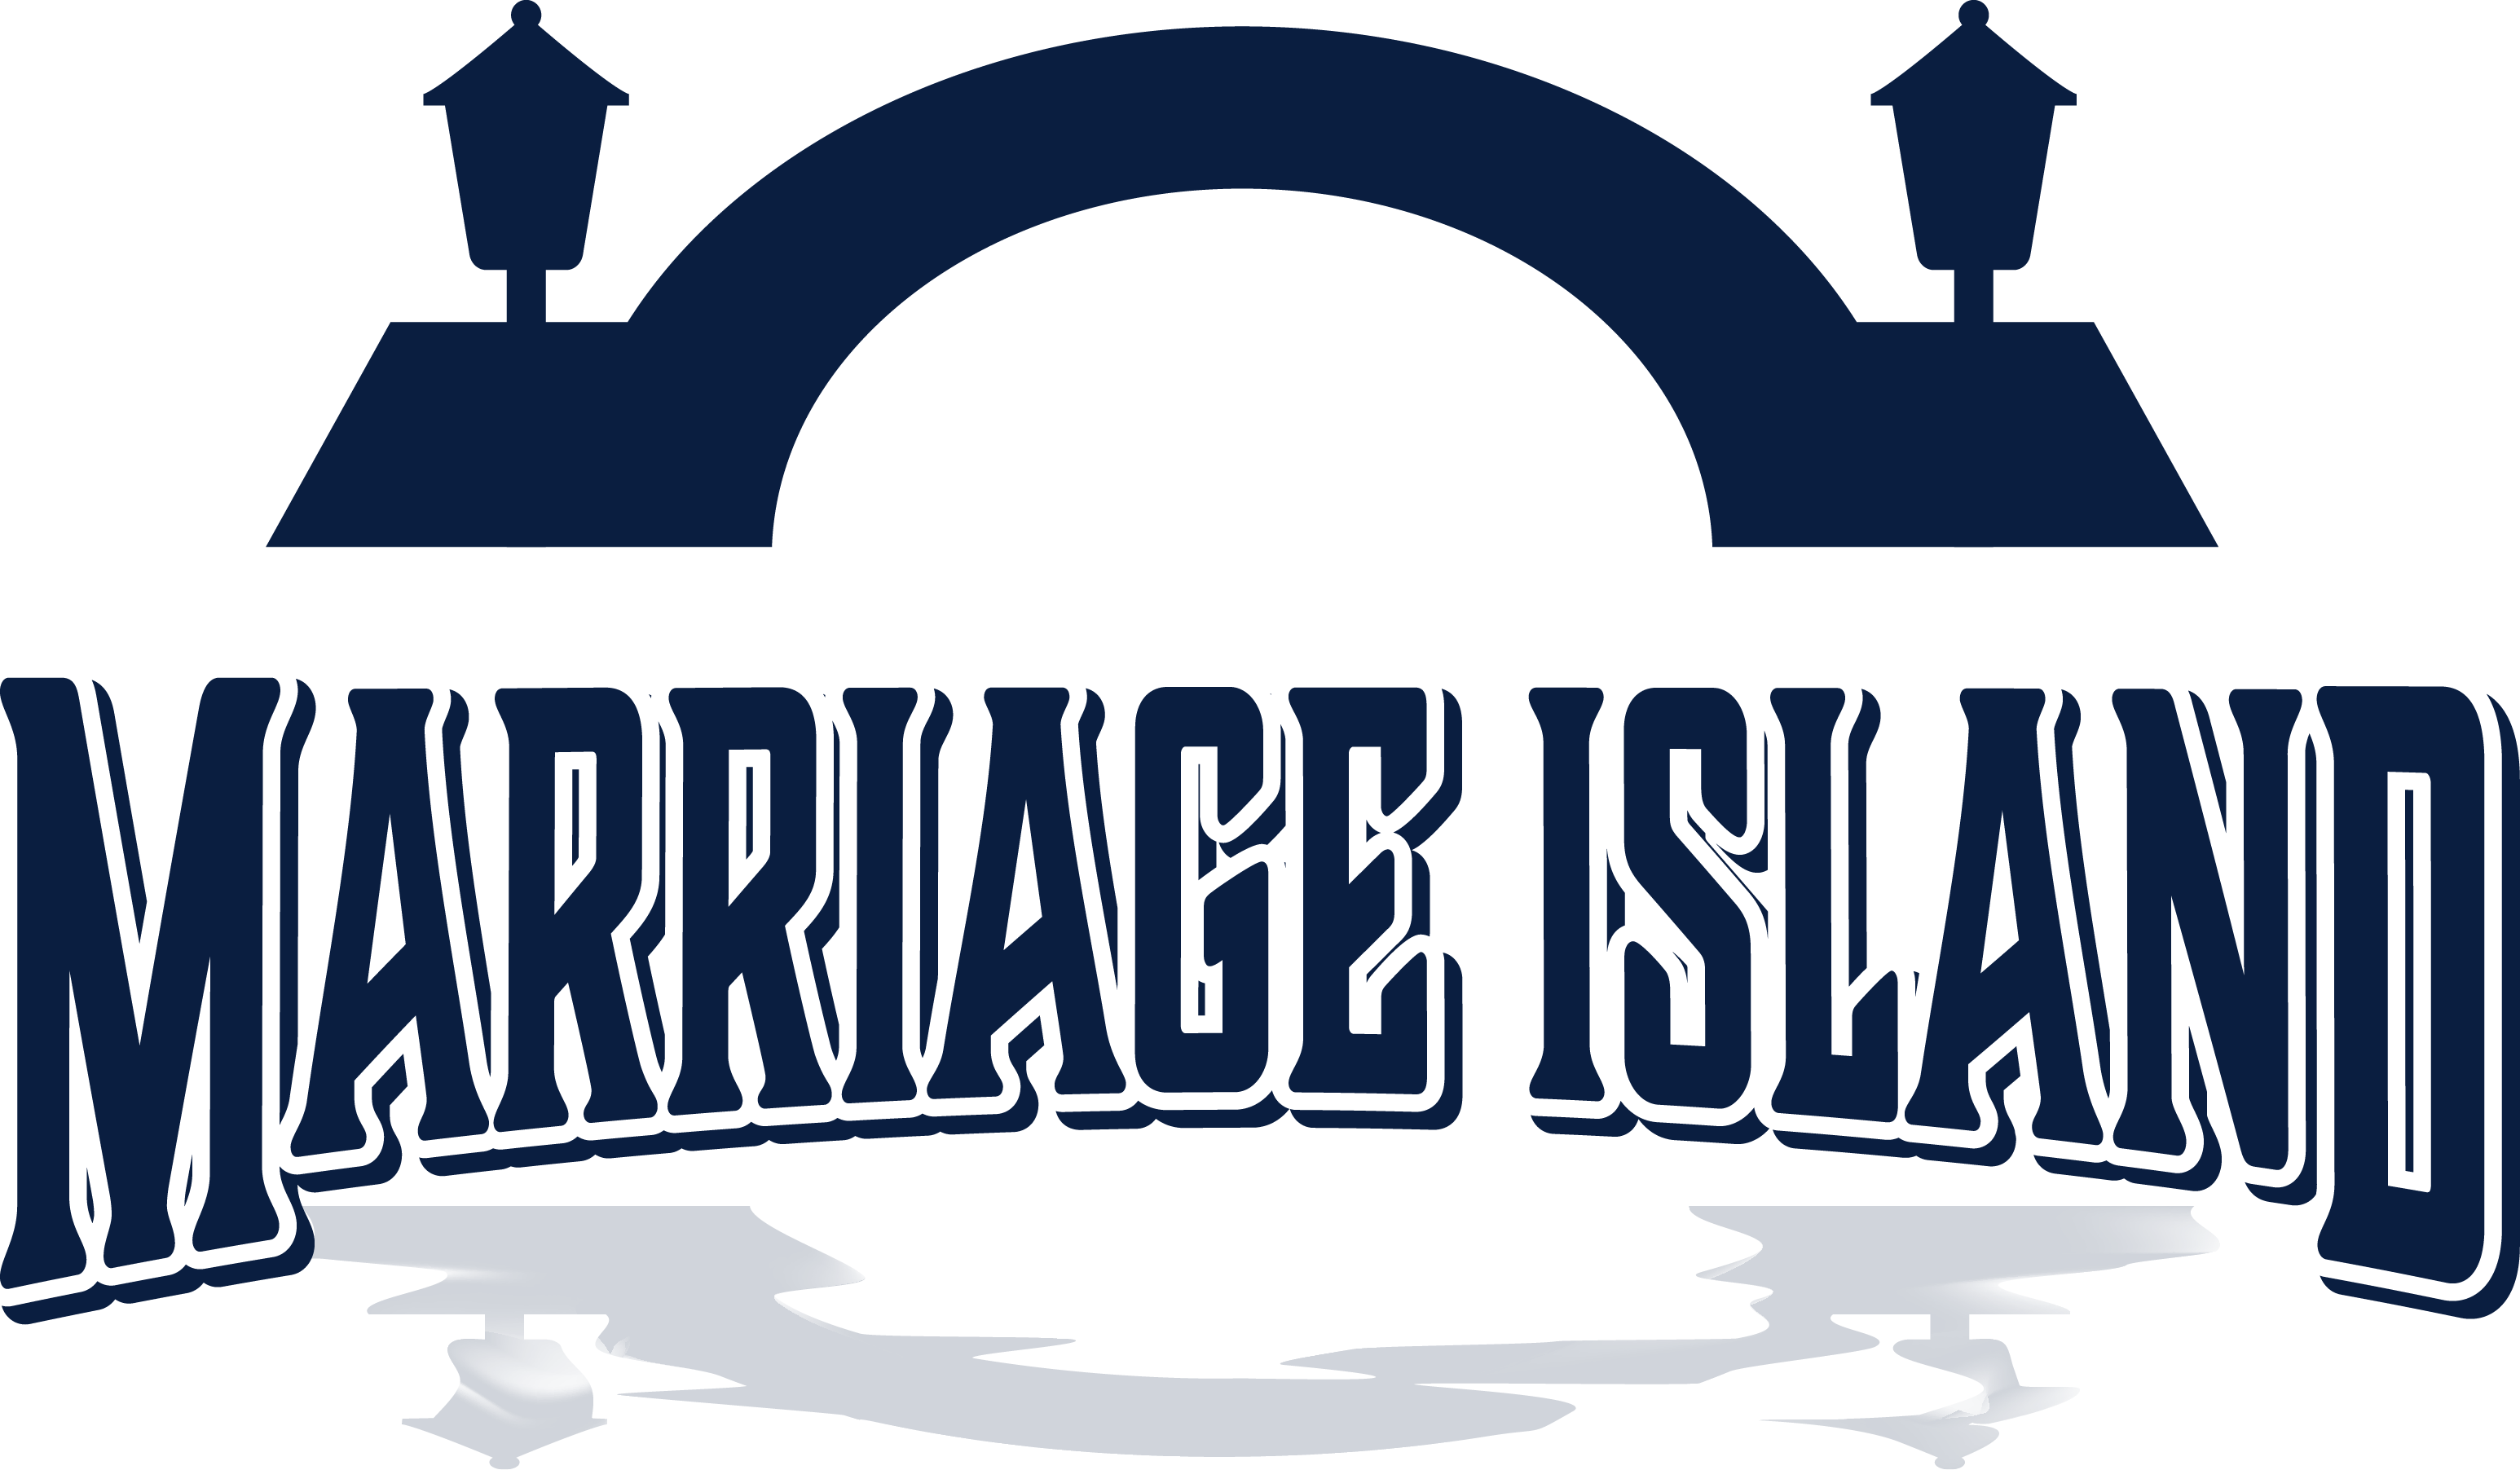 Marriage Island